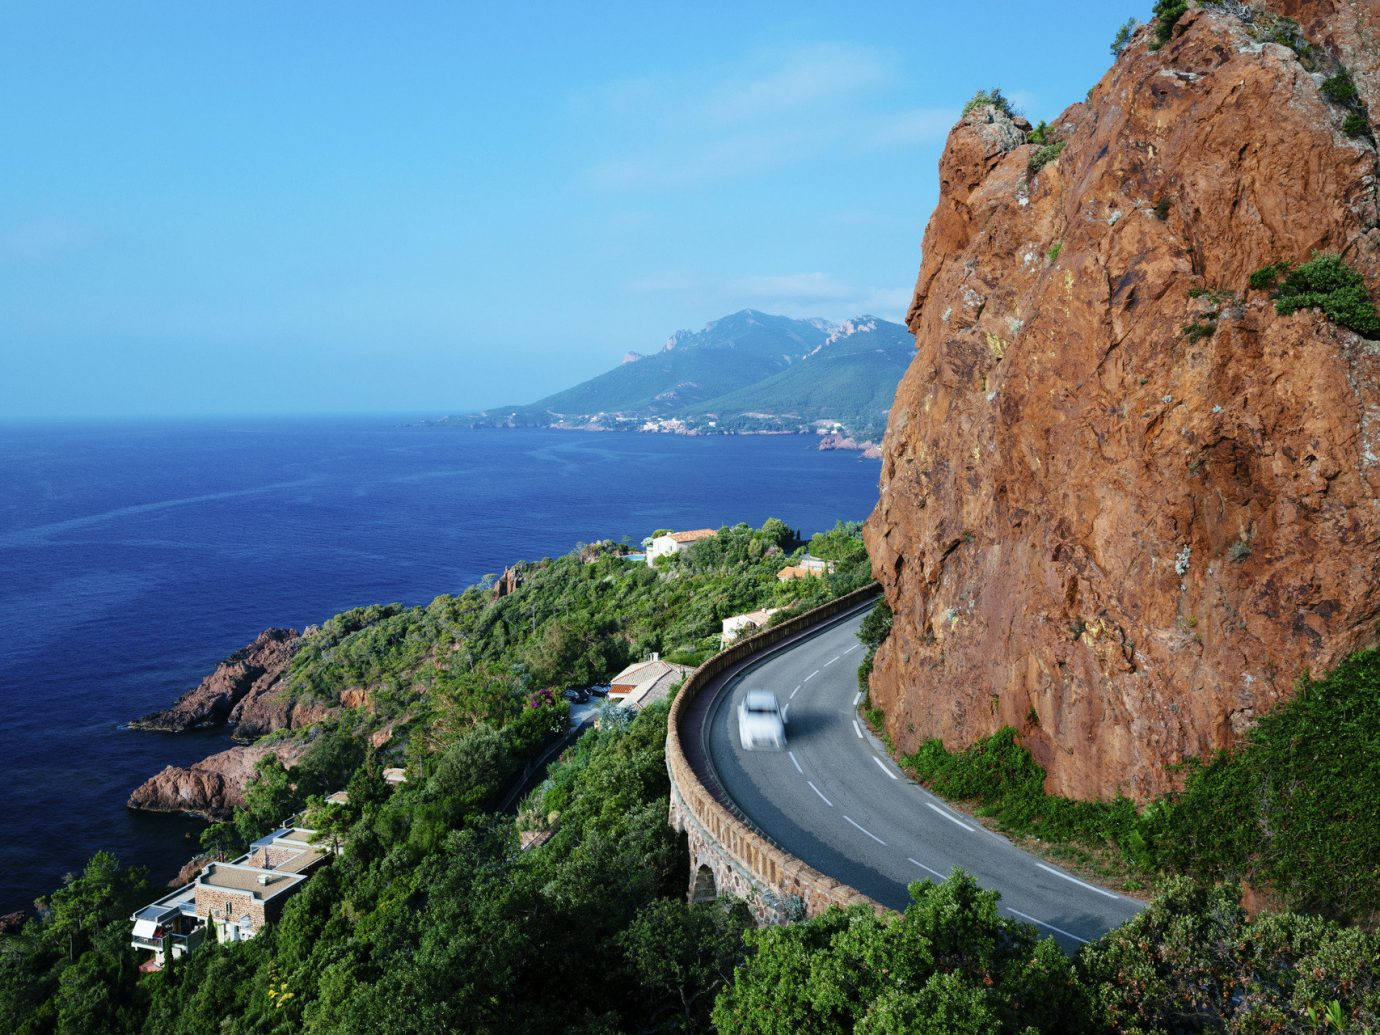 Road Trips Trip Ideas mountain outdoor sky Nature Coast rock cliff Sea landform geographical feature body of water rocky Ocean terrain shore vacation bay aerial photography cape landscape cove fjord hillside overlooking